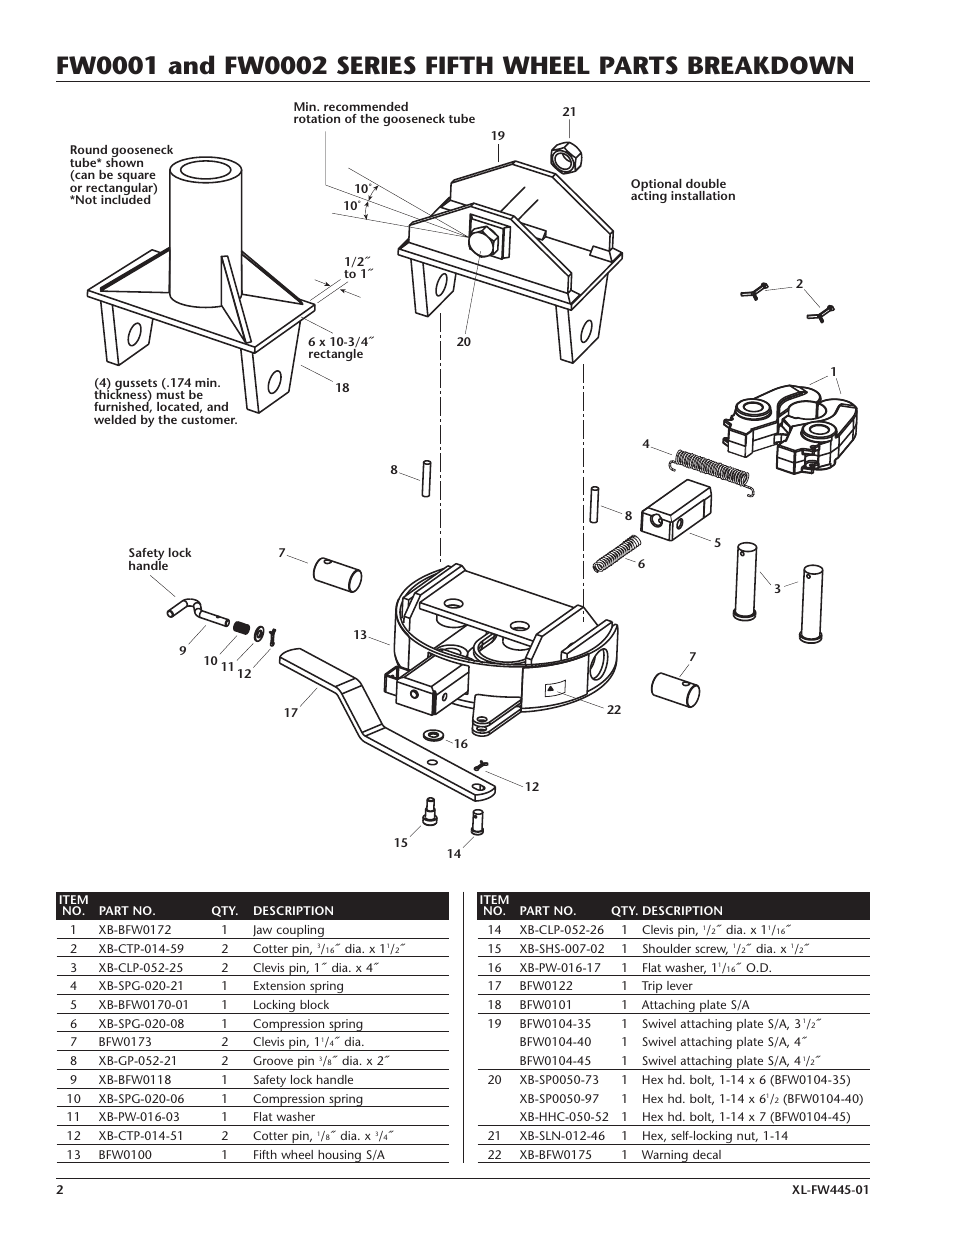 hight resolution of fifth wheel parts diagram wiring diagram data val holland fifth wheel parts diagram fifth wheel parts diagram